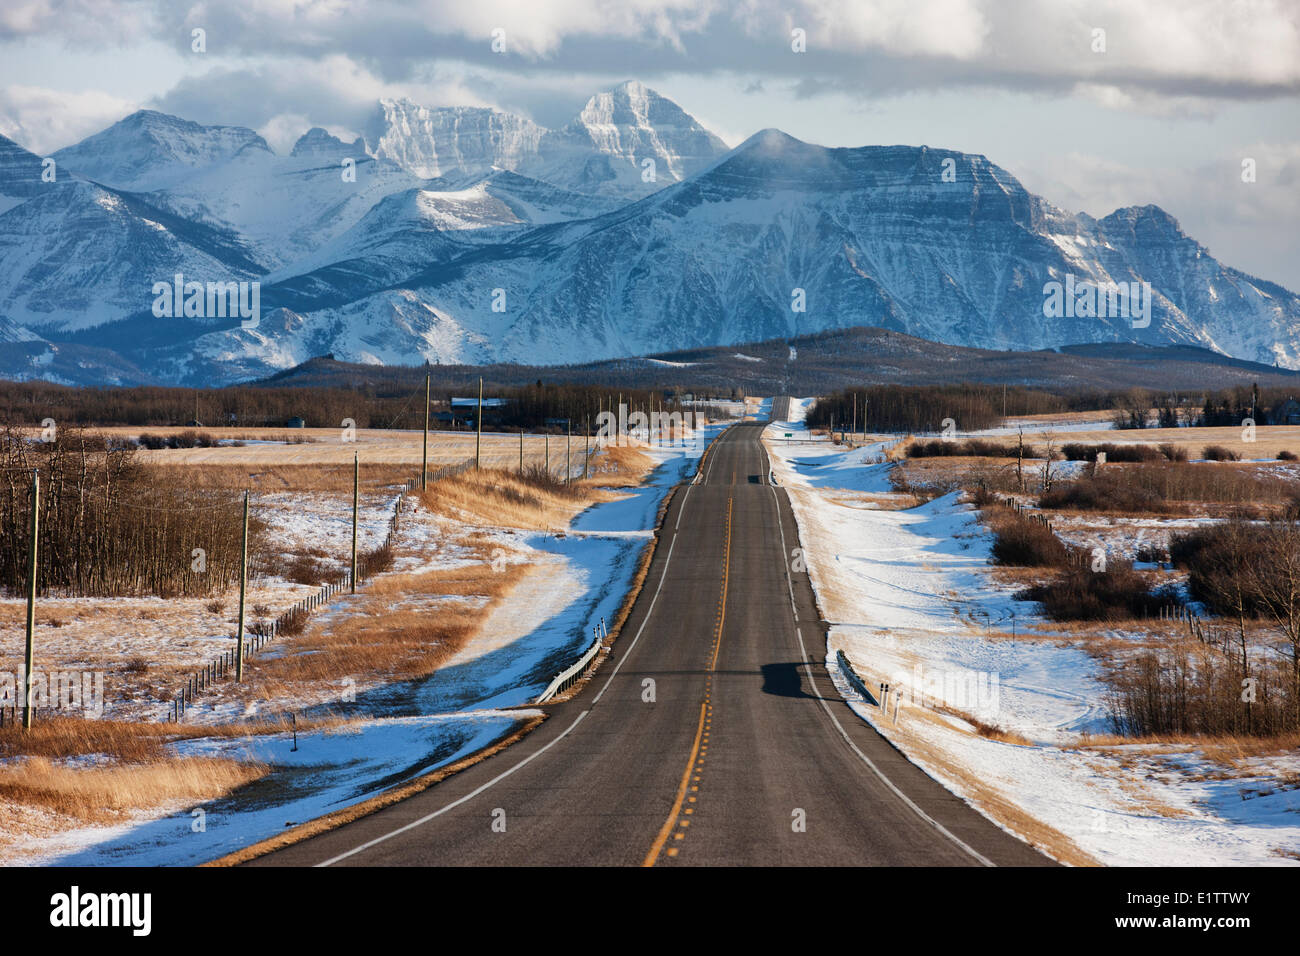 View of Mountains in winter, Twin Butte, Alberta, Canada - Stock Image